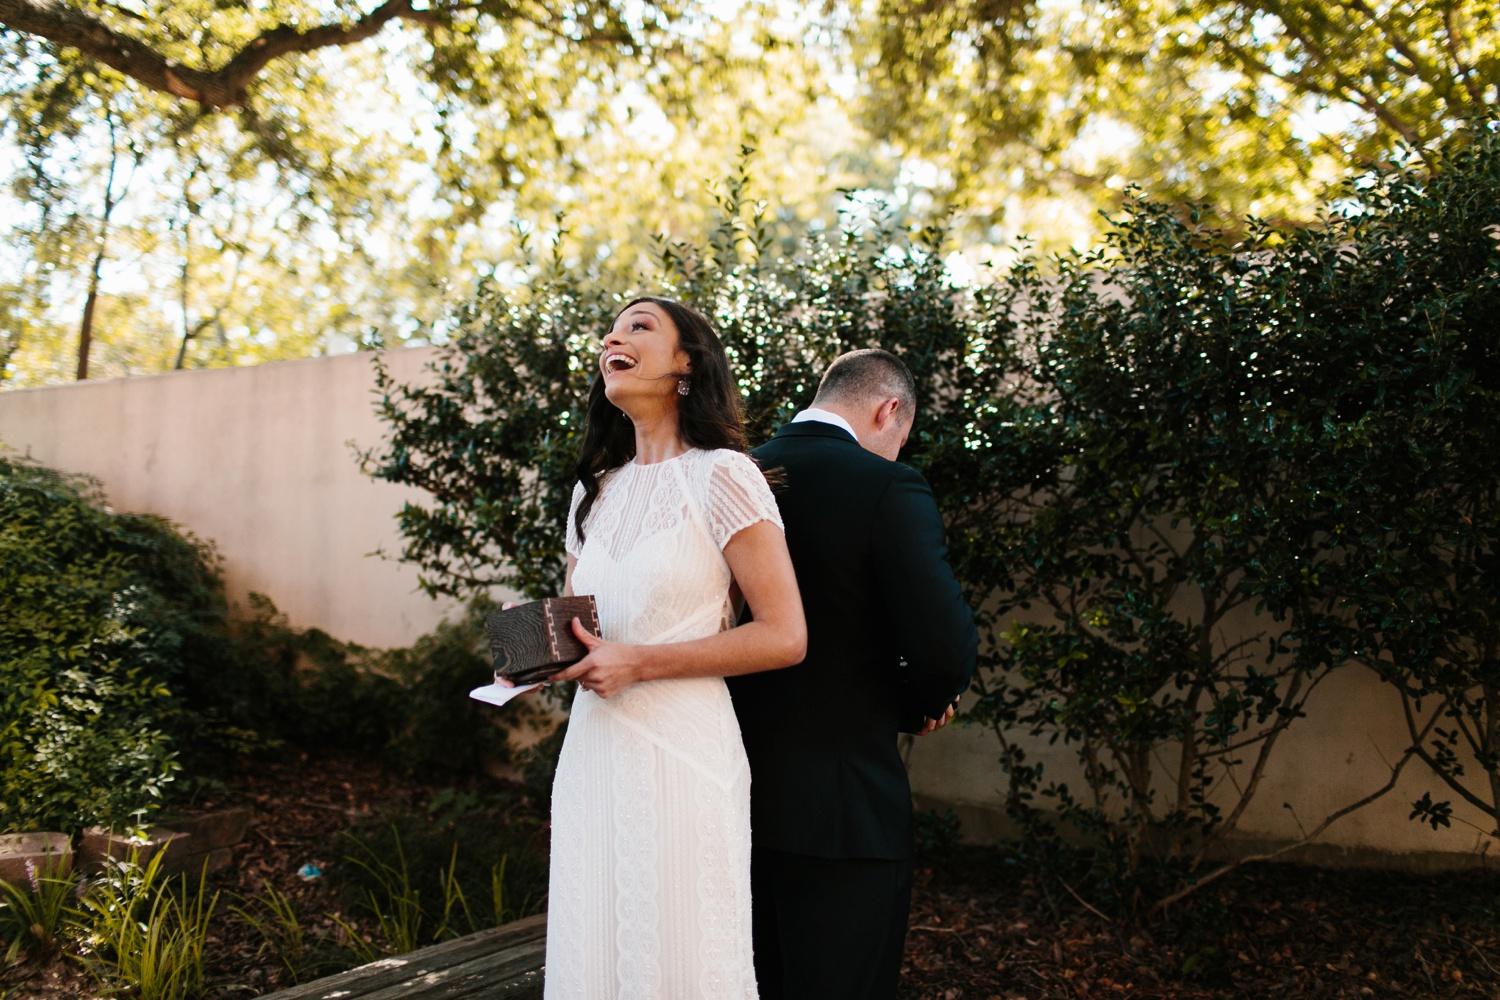 Kadee + Tyler | a raw, emotional wedding at the Filter Building on White Rock Lake in Dallas, TX by North Texas Wedding Photographer, Rachel Meagan Photography 039